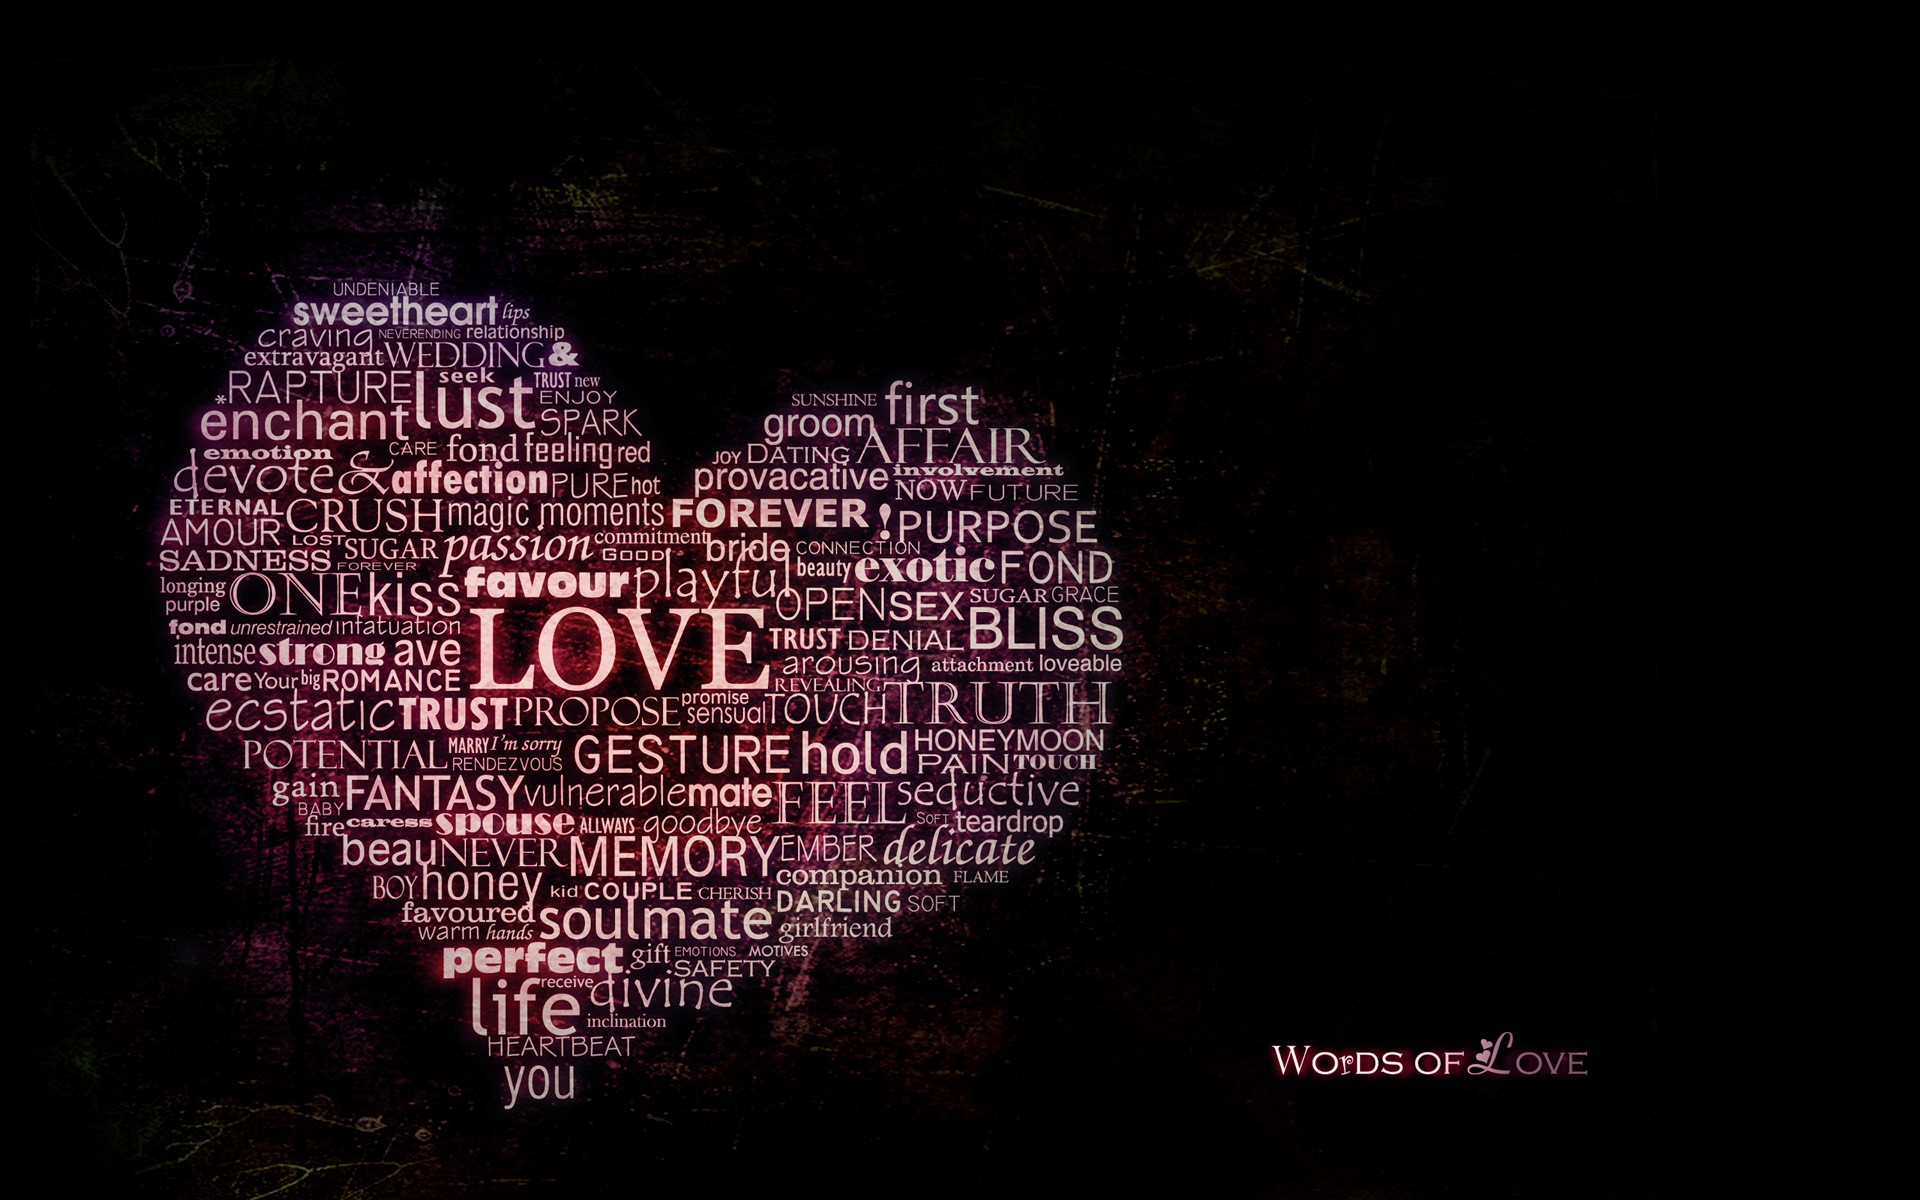 Love Quotes wallpaper love 34653959 1920 1200jpg 1920x1200